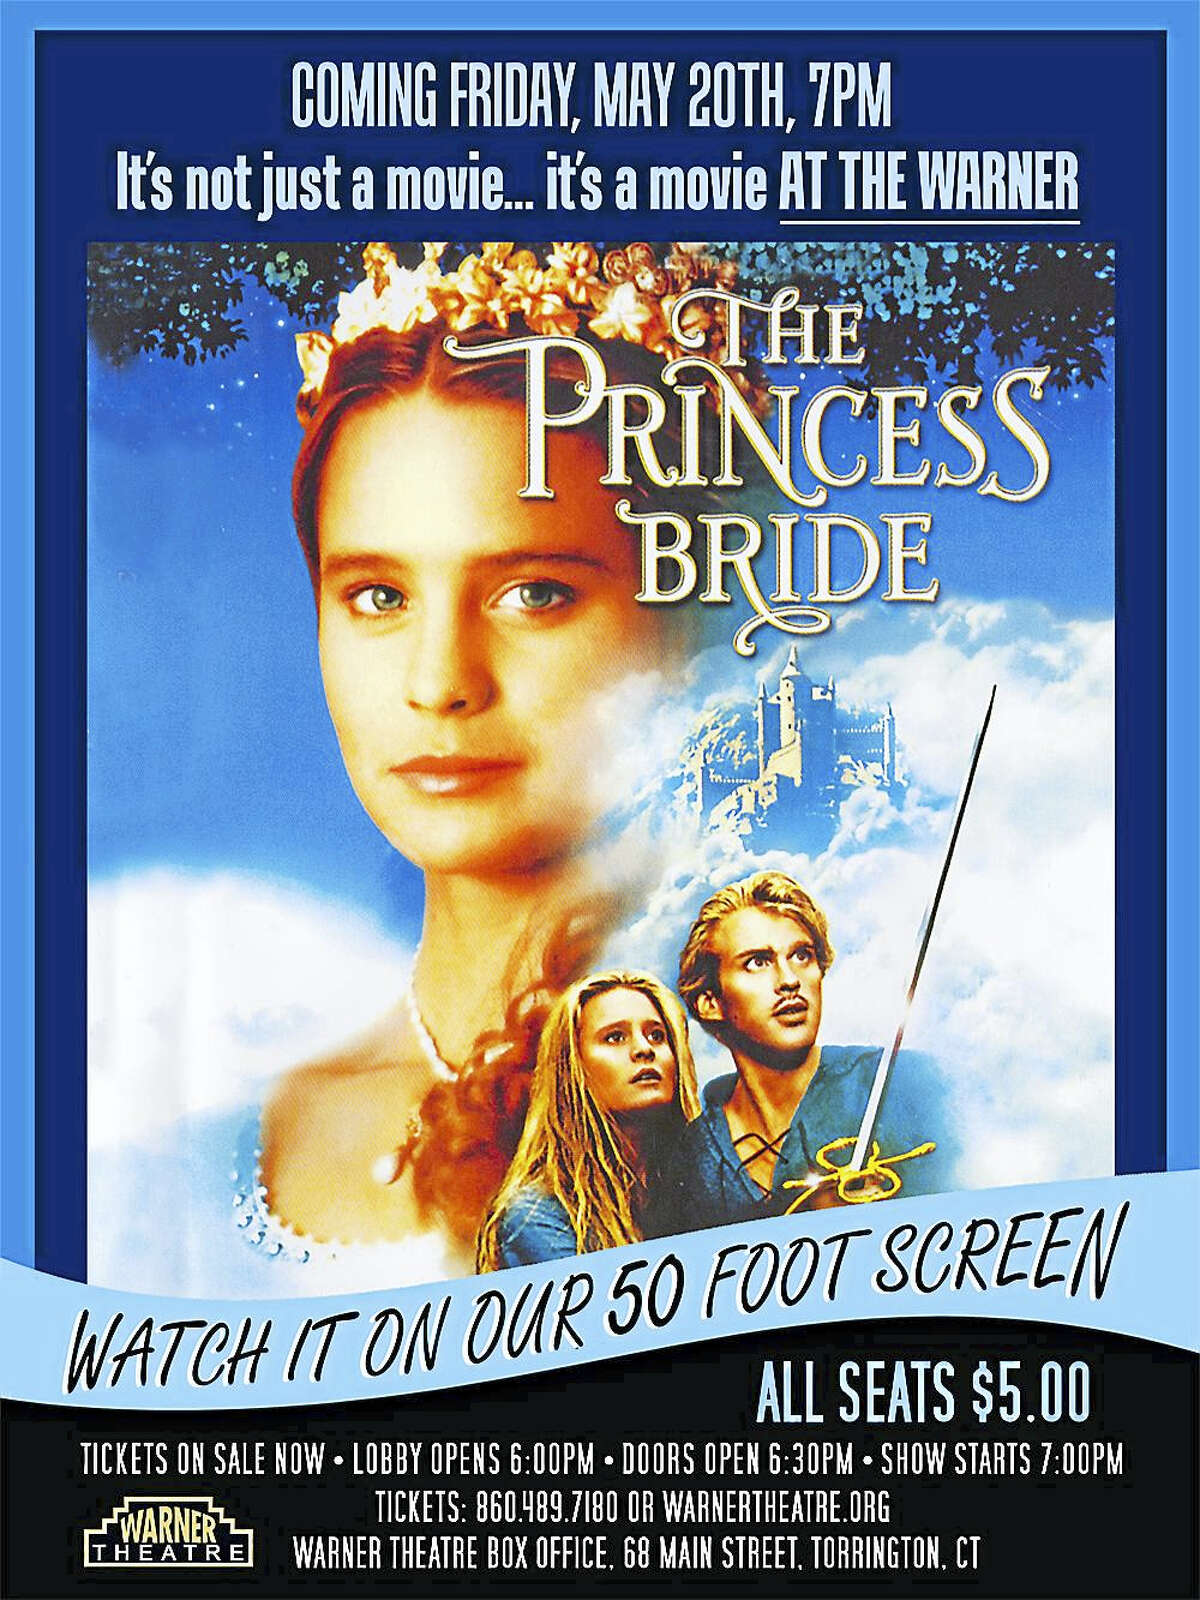 Contributed photoThe Warner Theatre will show The Princess Bride on its 50-foot screen in the main theater in May.